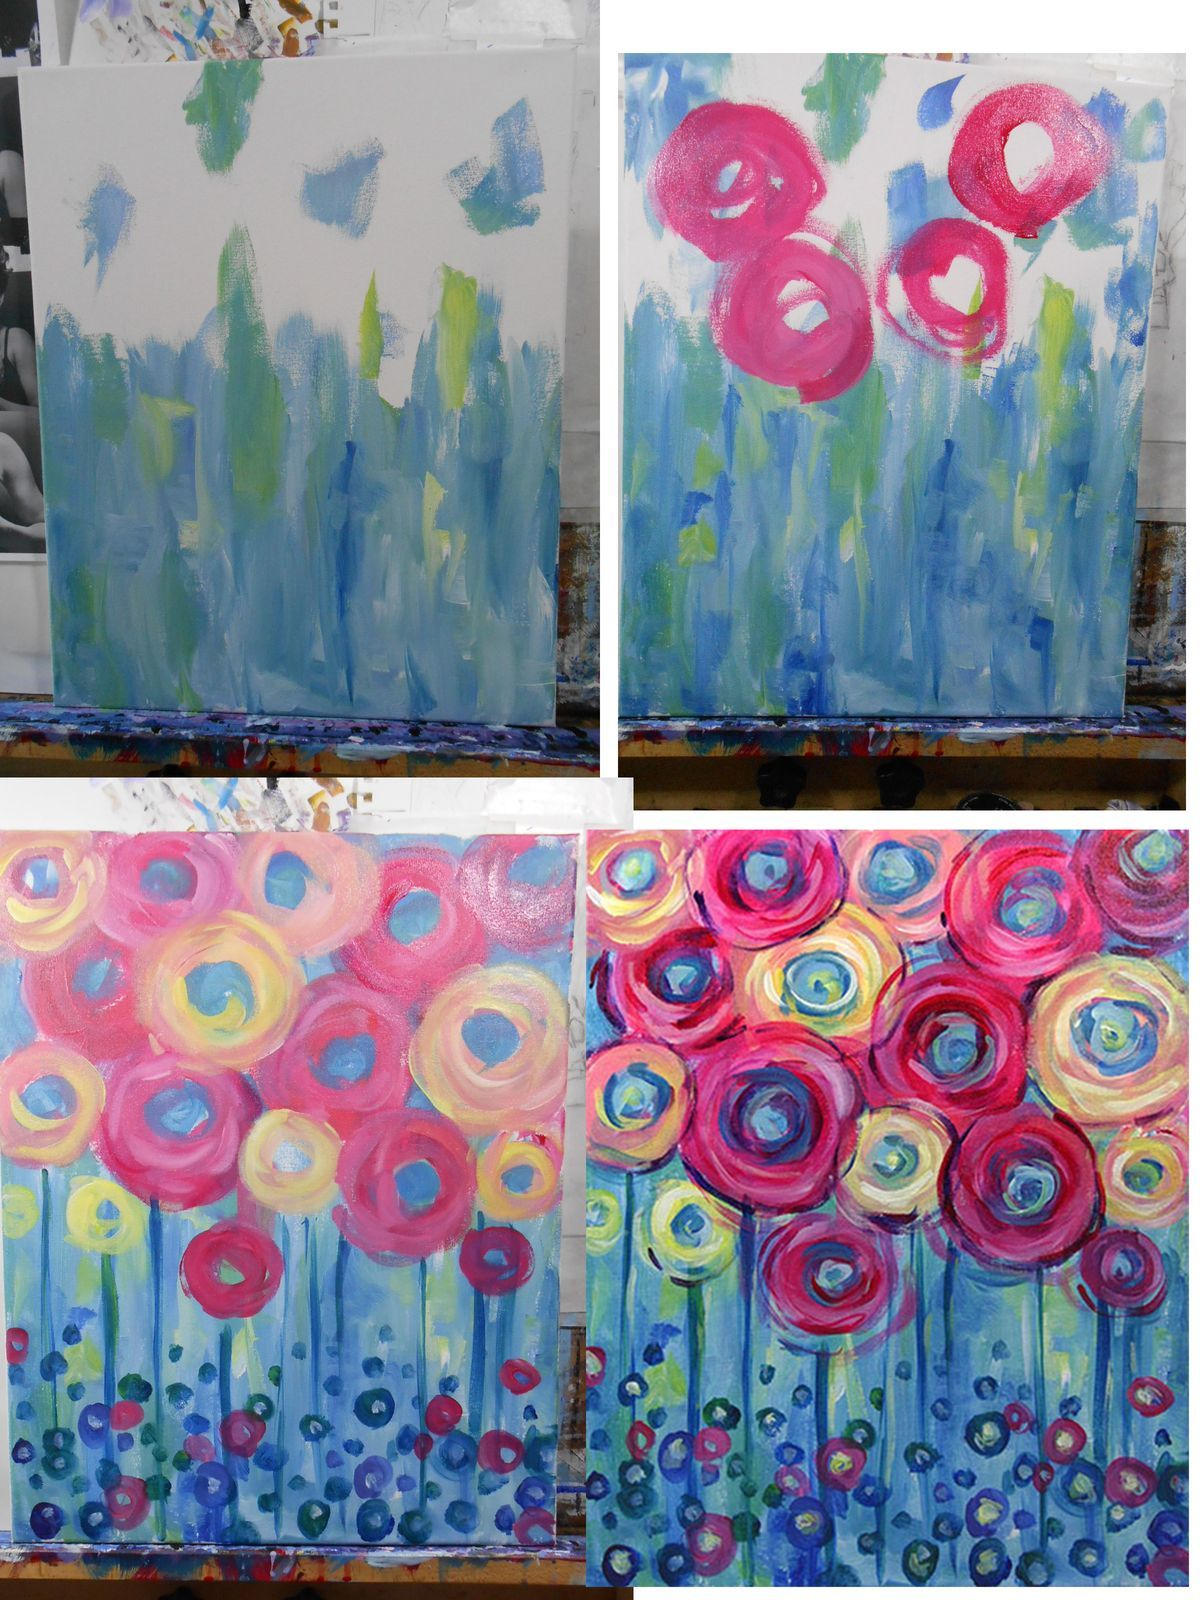 Coming Up Roses Easy Colors Red Blue Yellow White Brushes Big Flat And Medium Round